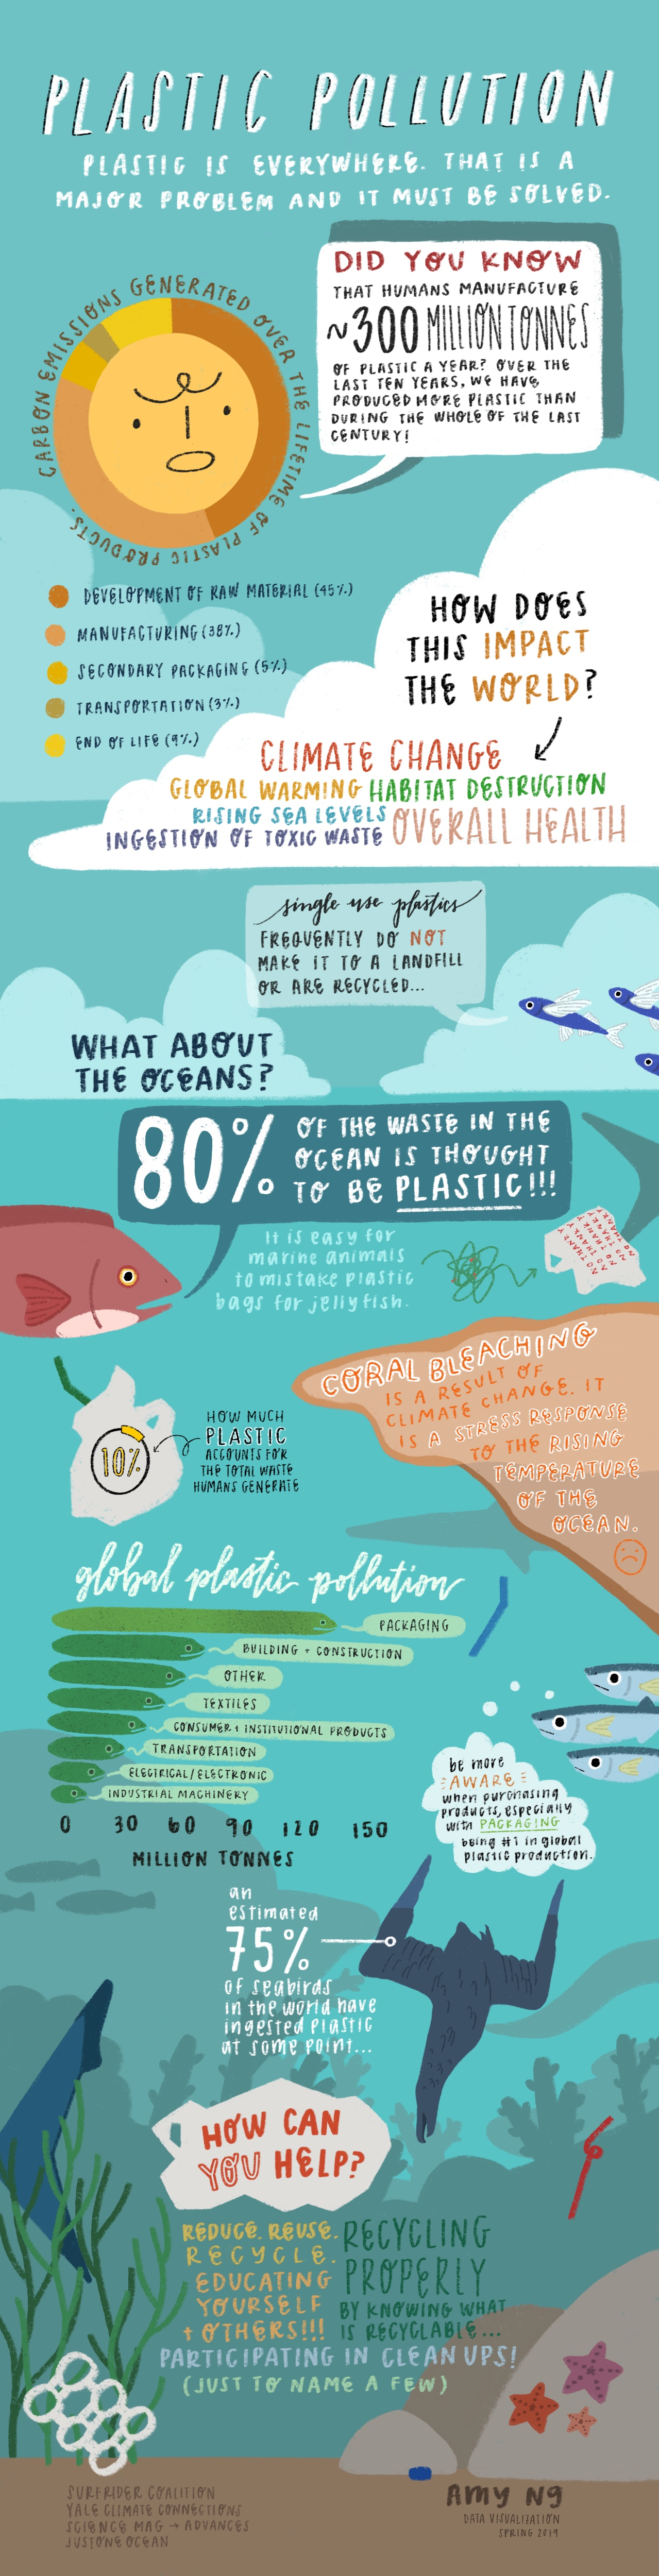 plastic_pollution_infographic_ copy.jpg